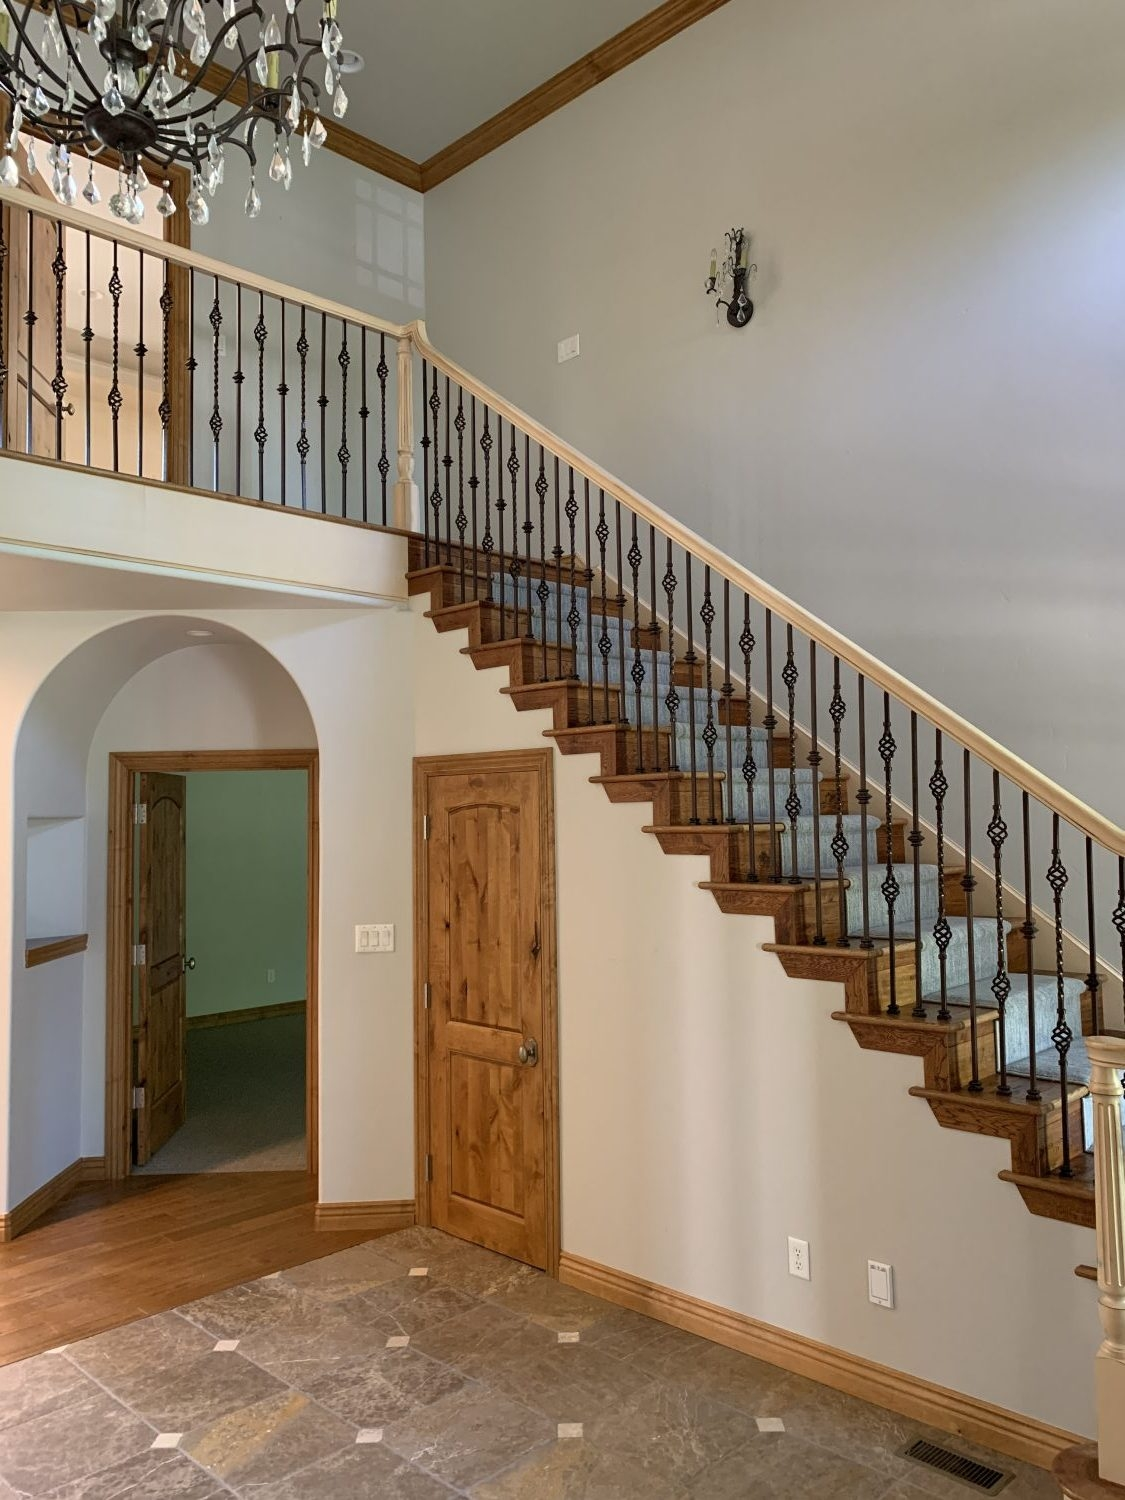 The Top Staircase Railing Inspiration Photos We Re Using To Design | Front Stair House Design | Unique | Simple | Veranda Stair | Low Cost 2 Bhk House | Front Jina